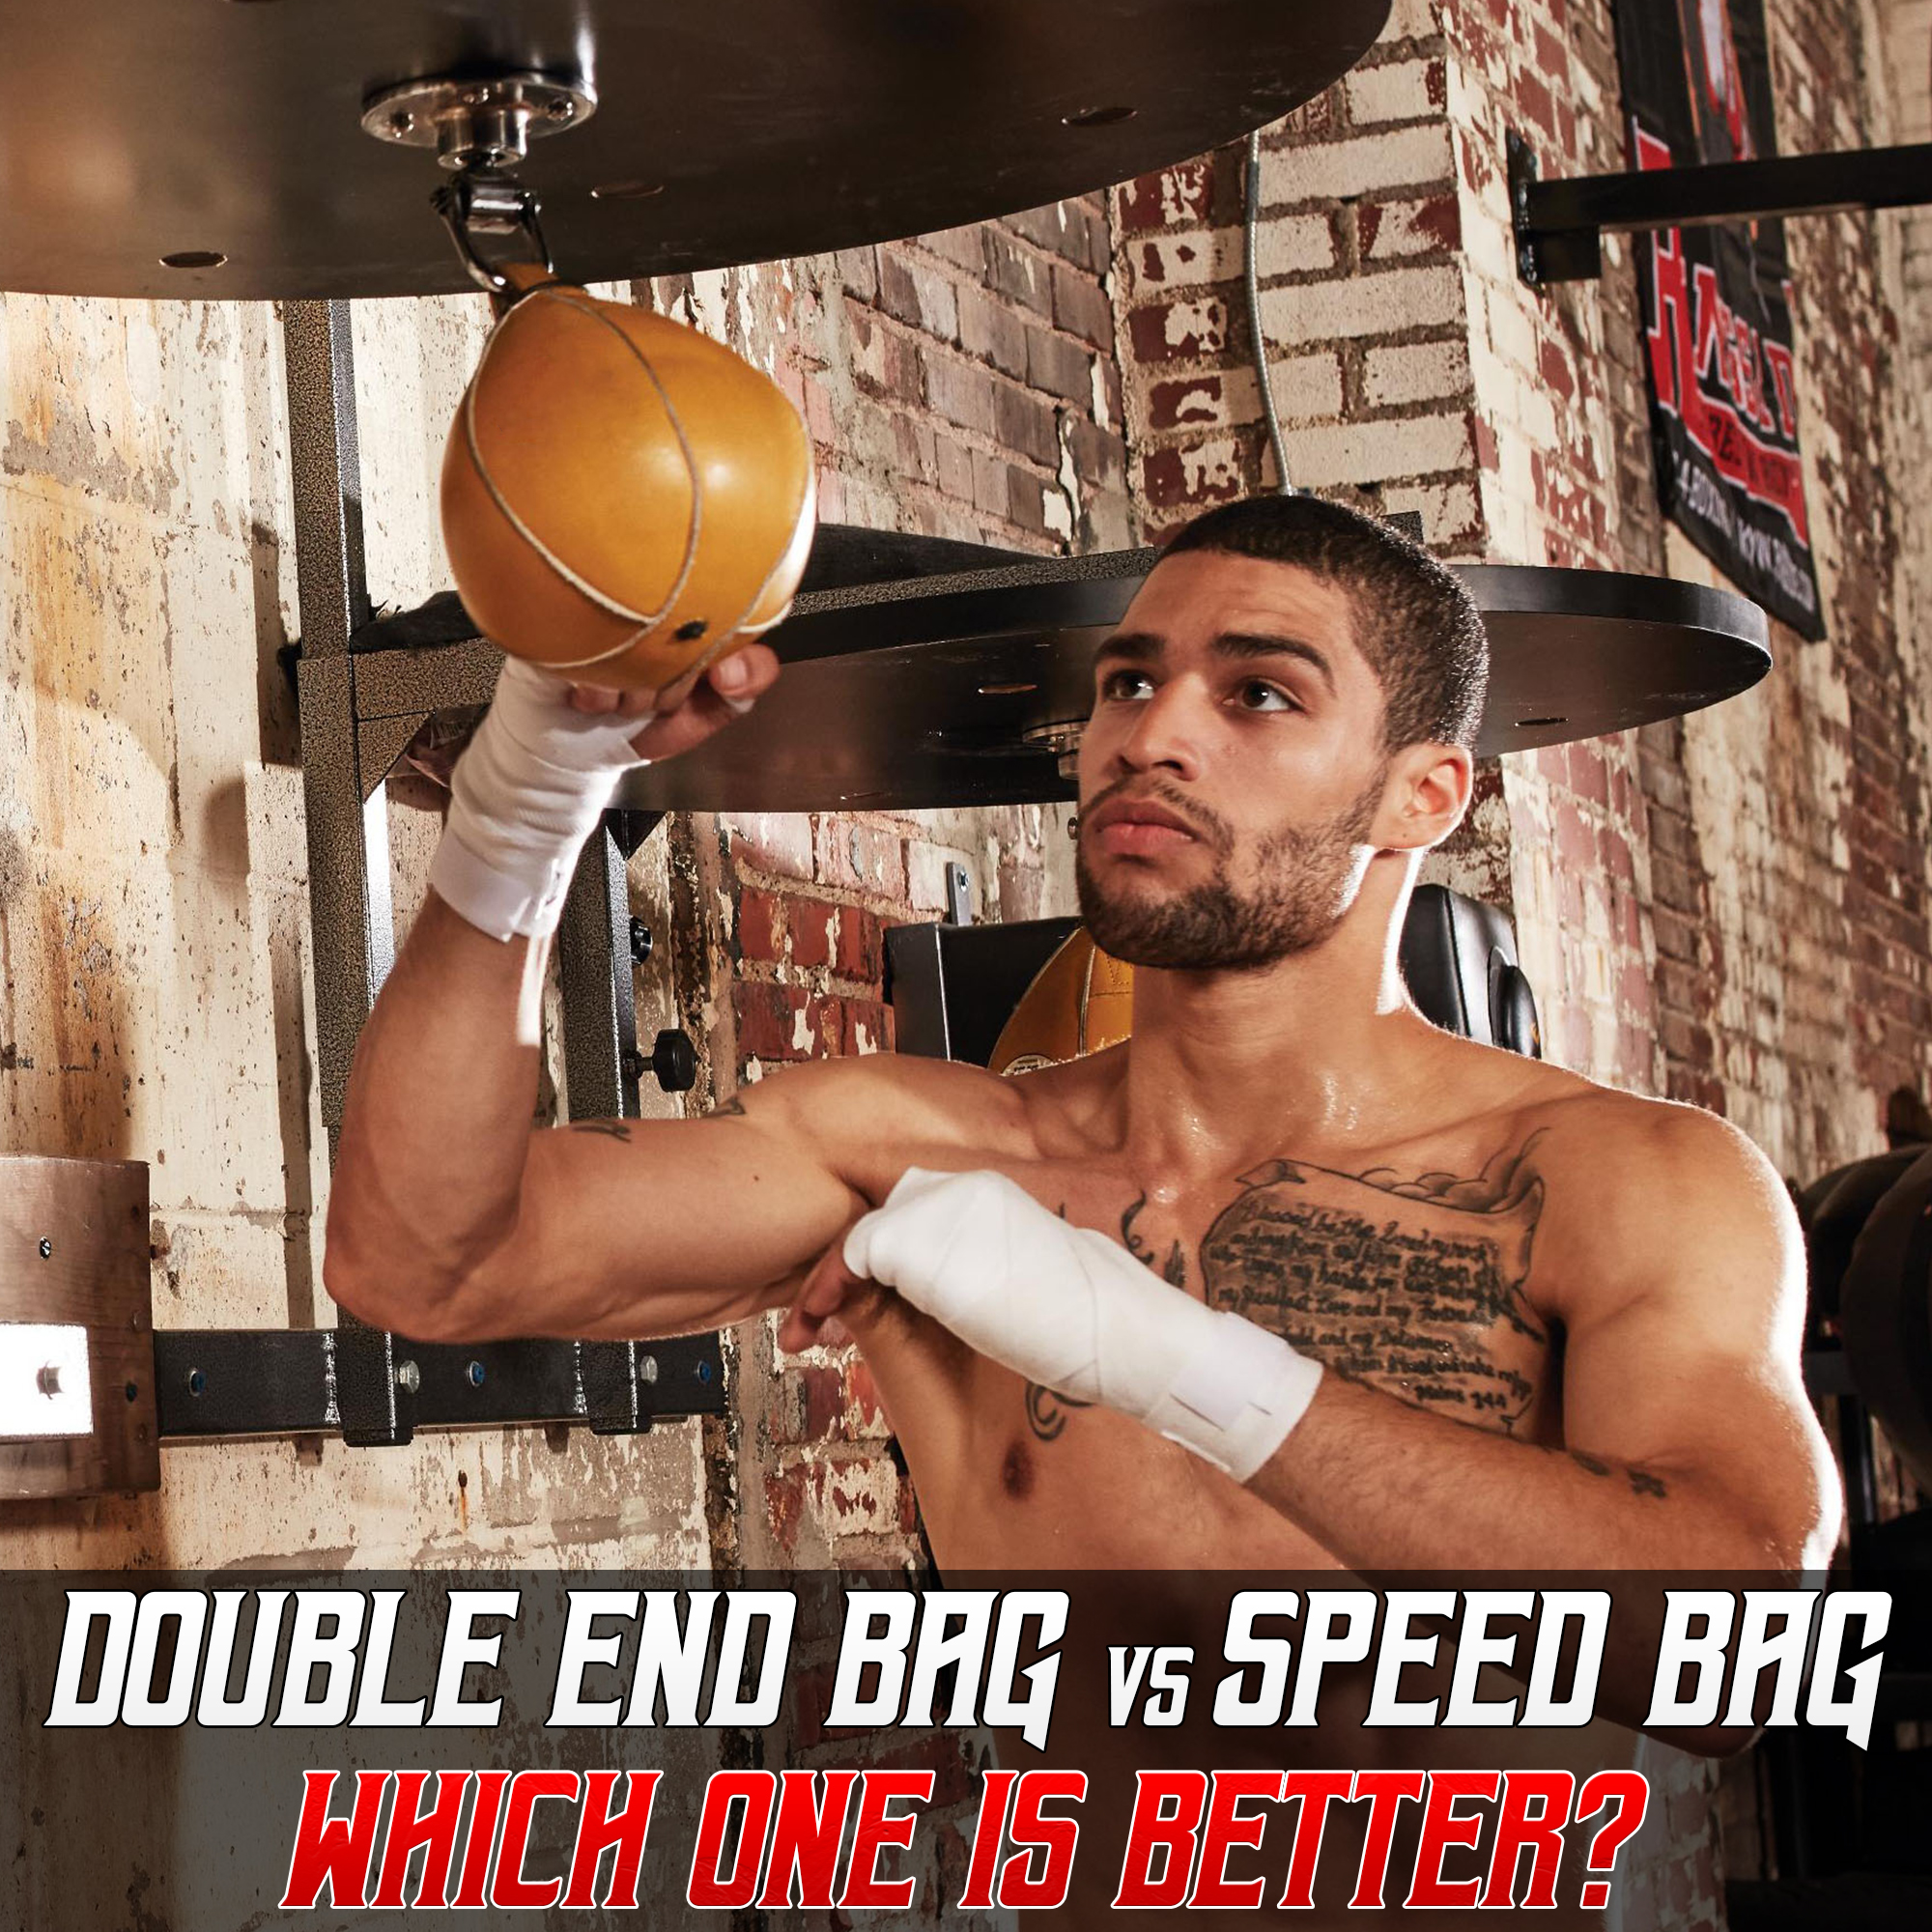 Double End Bag vs Speed Bag: Which One Is Better